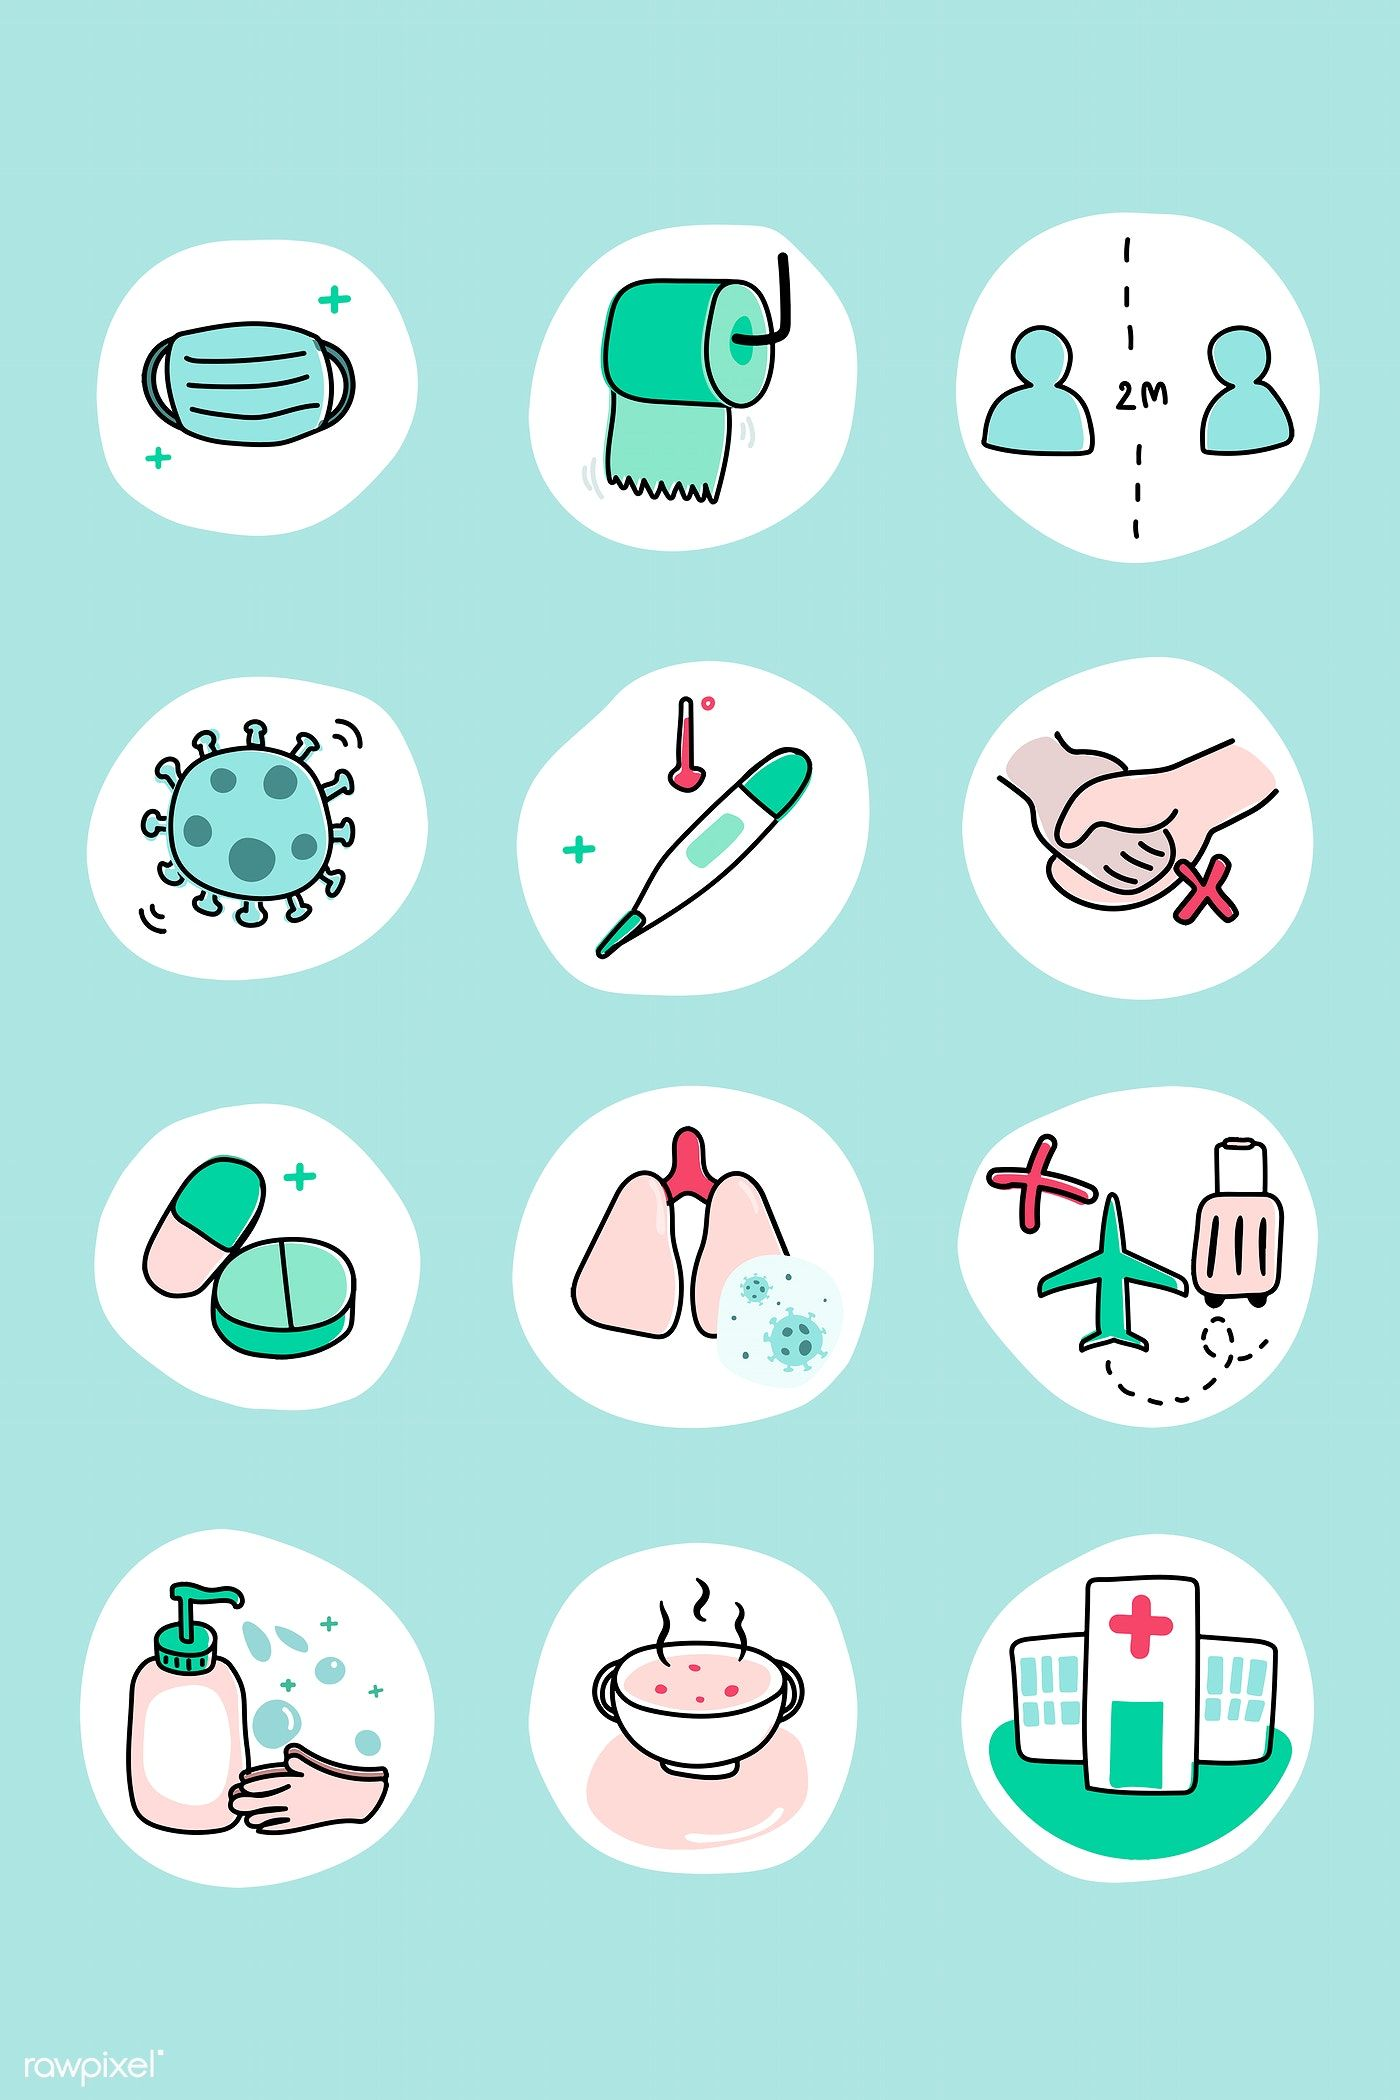 Pin by Elenore Baiocchi on my blog in 2020 Free icon set